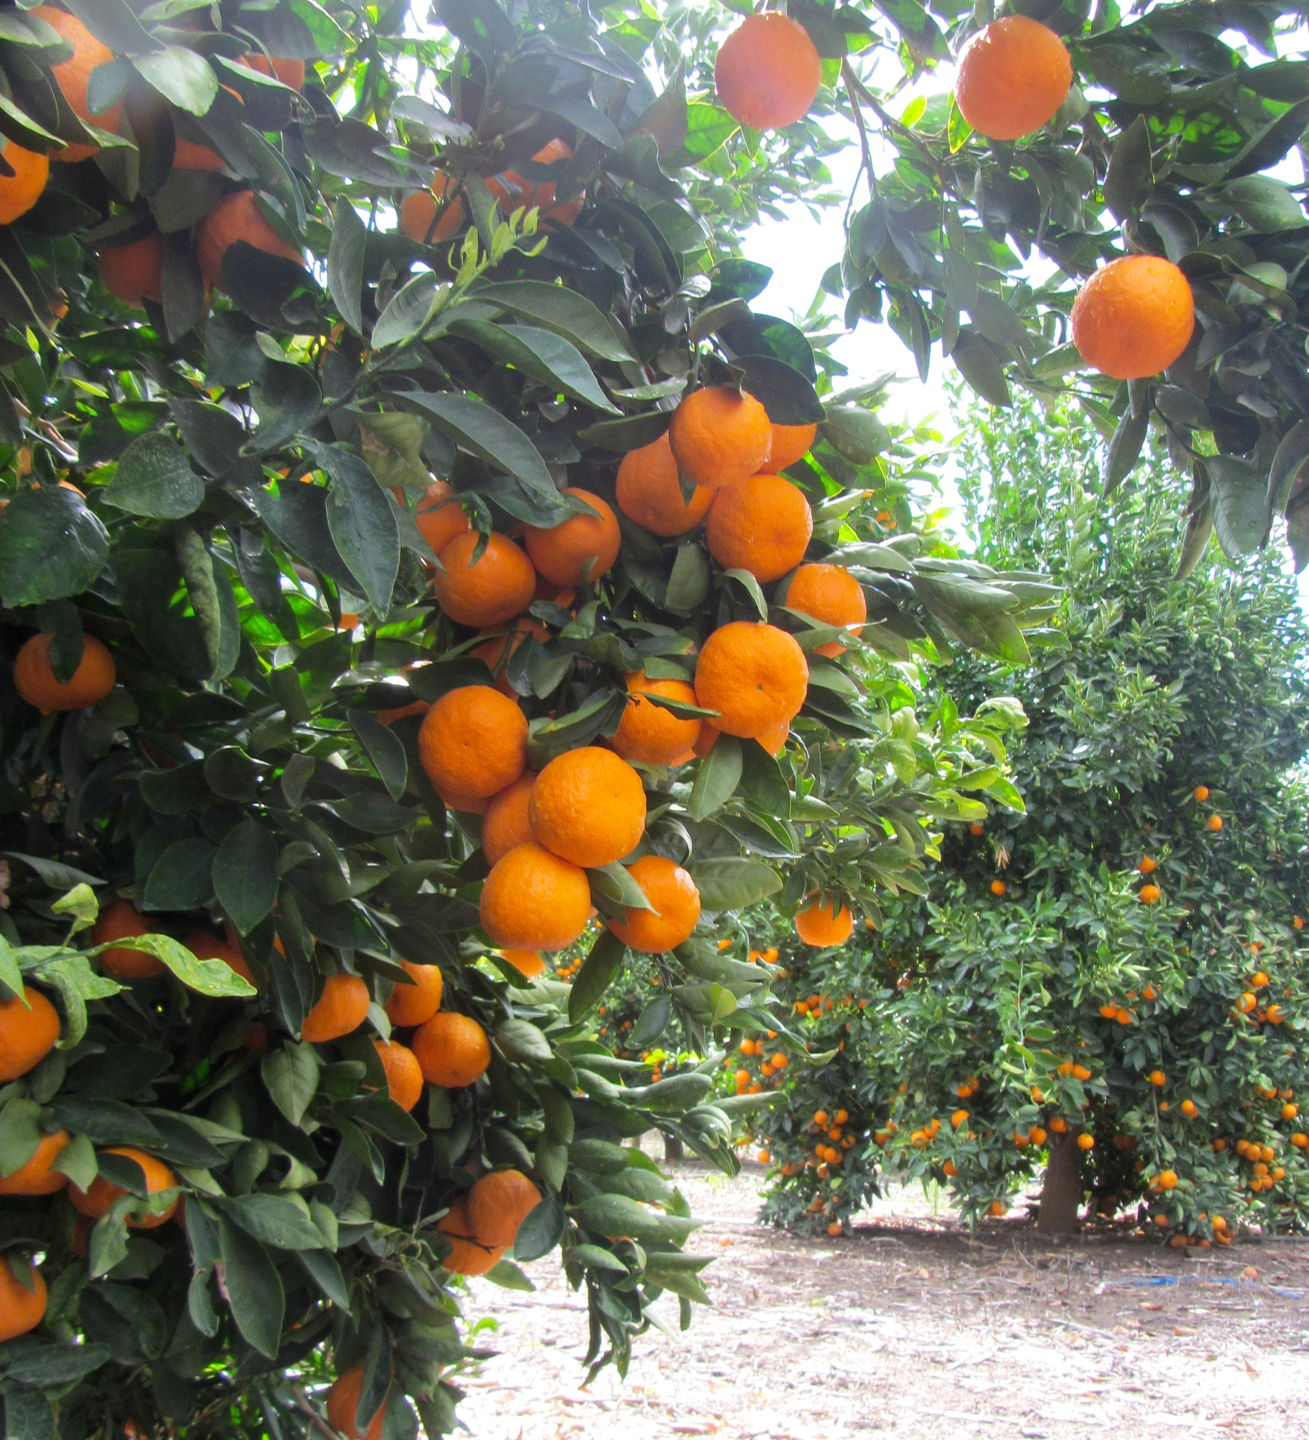 Ripe tangerines hanging heavy on the tree.